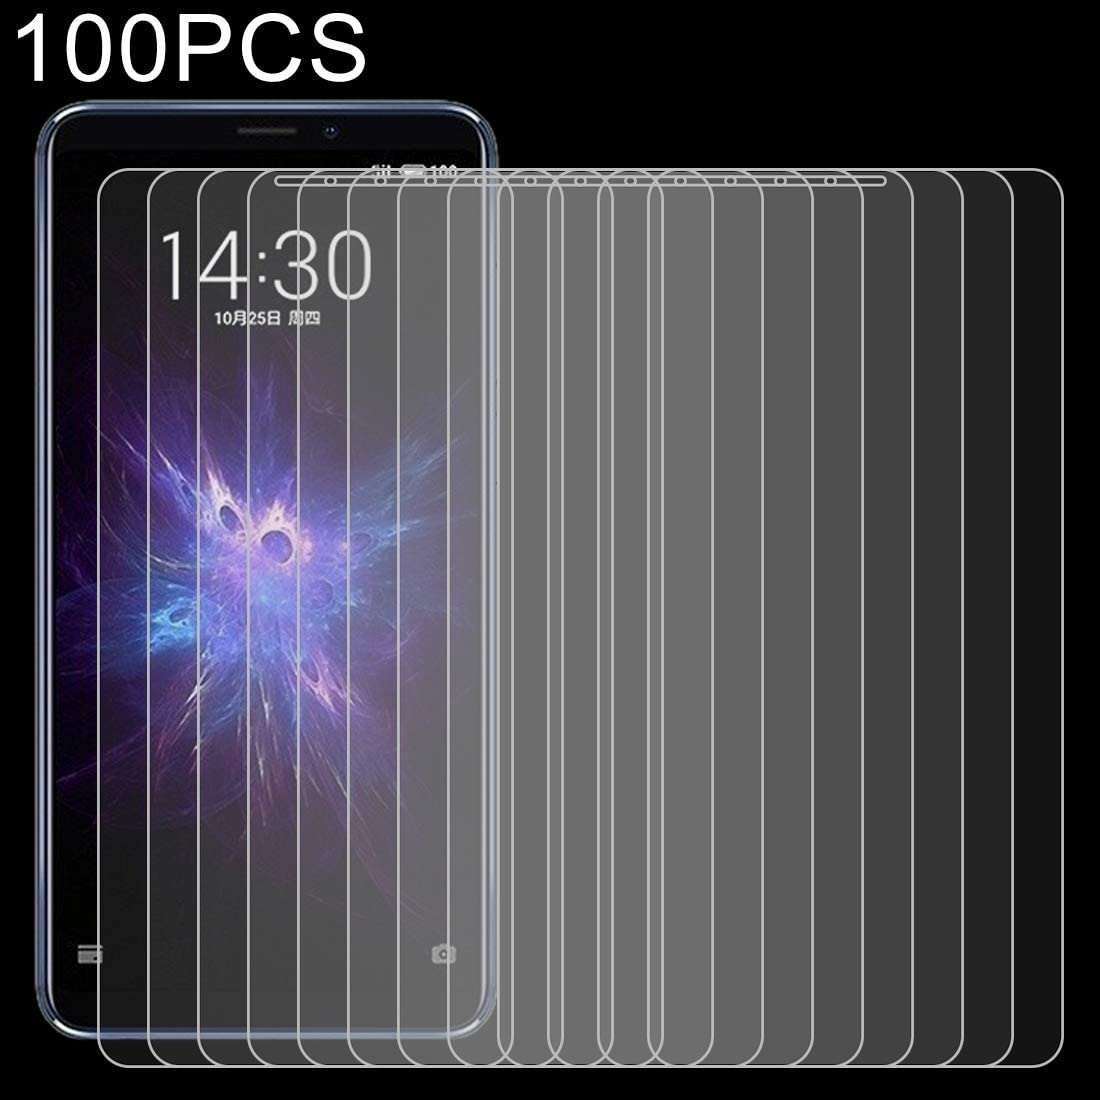 GzPuluz Glass Protector Film 100 PCS 0.26mm 9H 2.5D Explosion-Proof Tempered Glass Film for Meizu Note 8